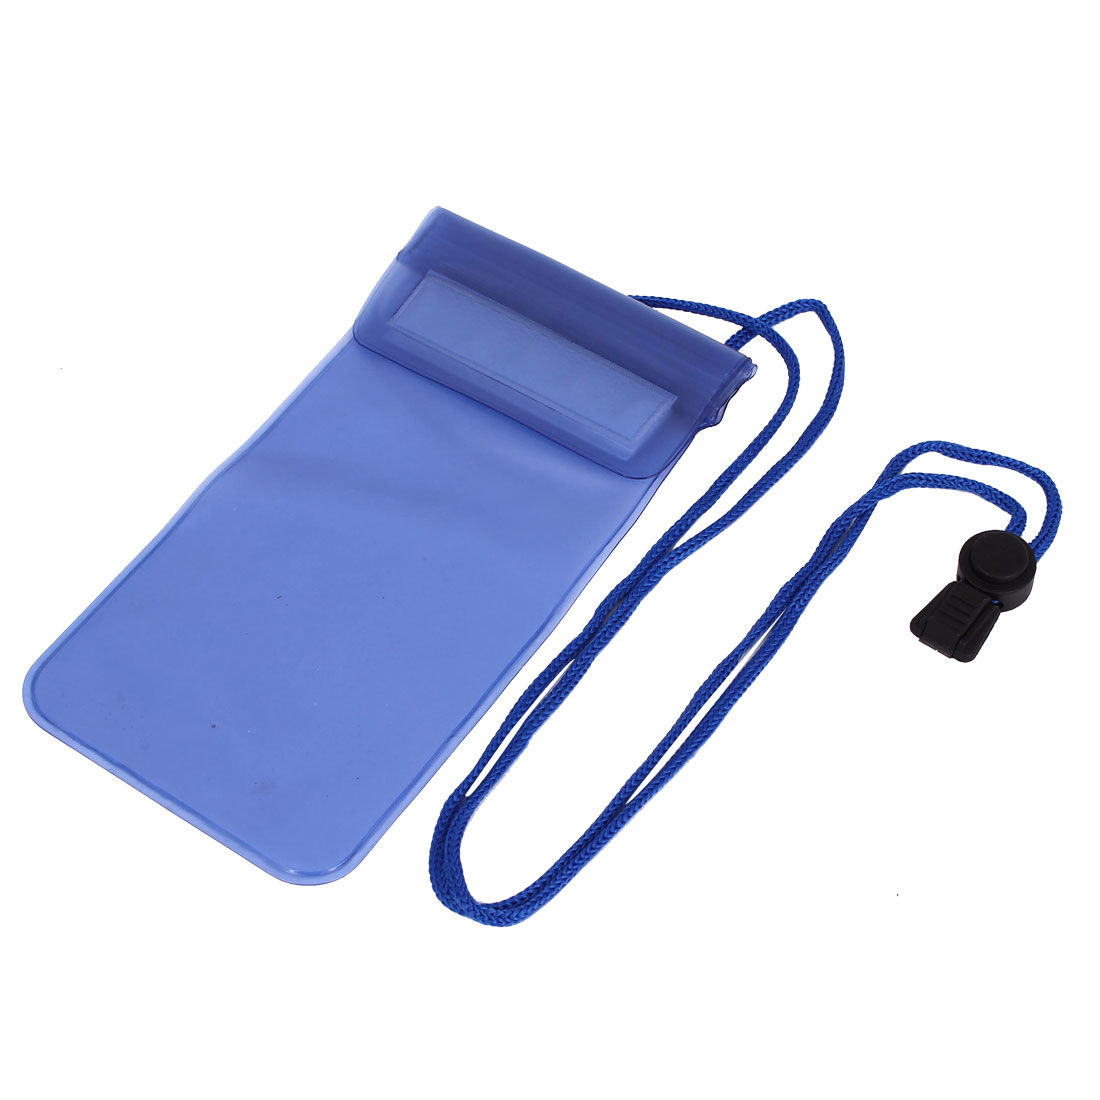 "Transparent Waterproof Dry Bag Case Cover Pouch Holder Blue for 5.5"" Cell Phone"